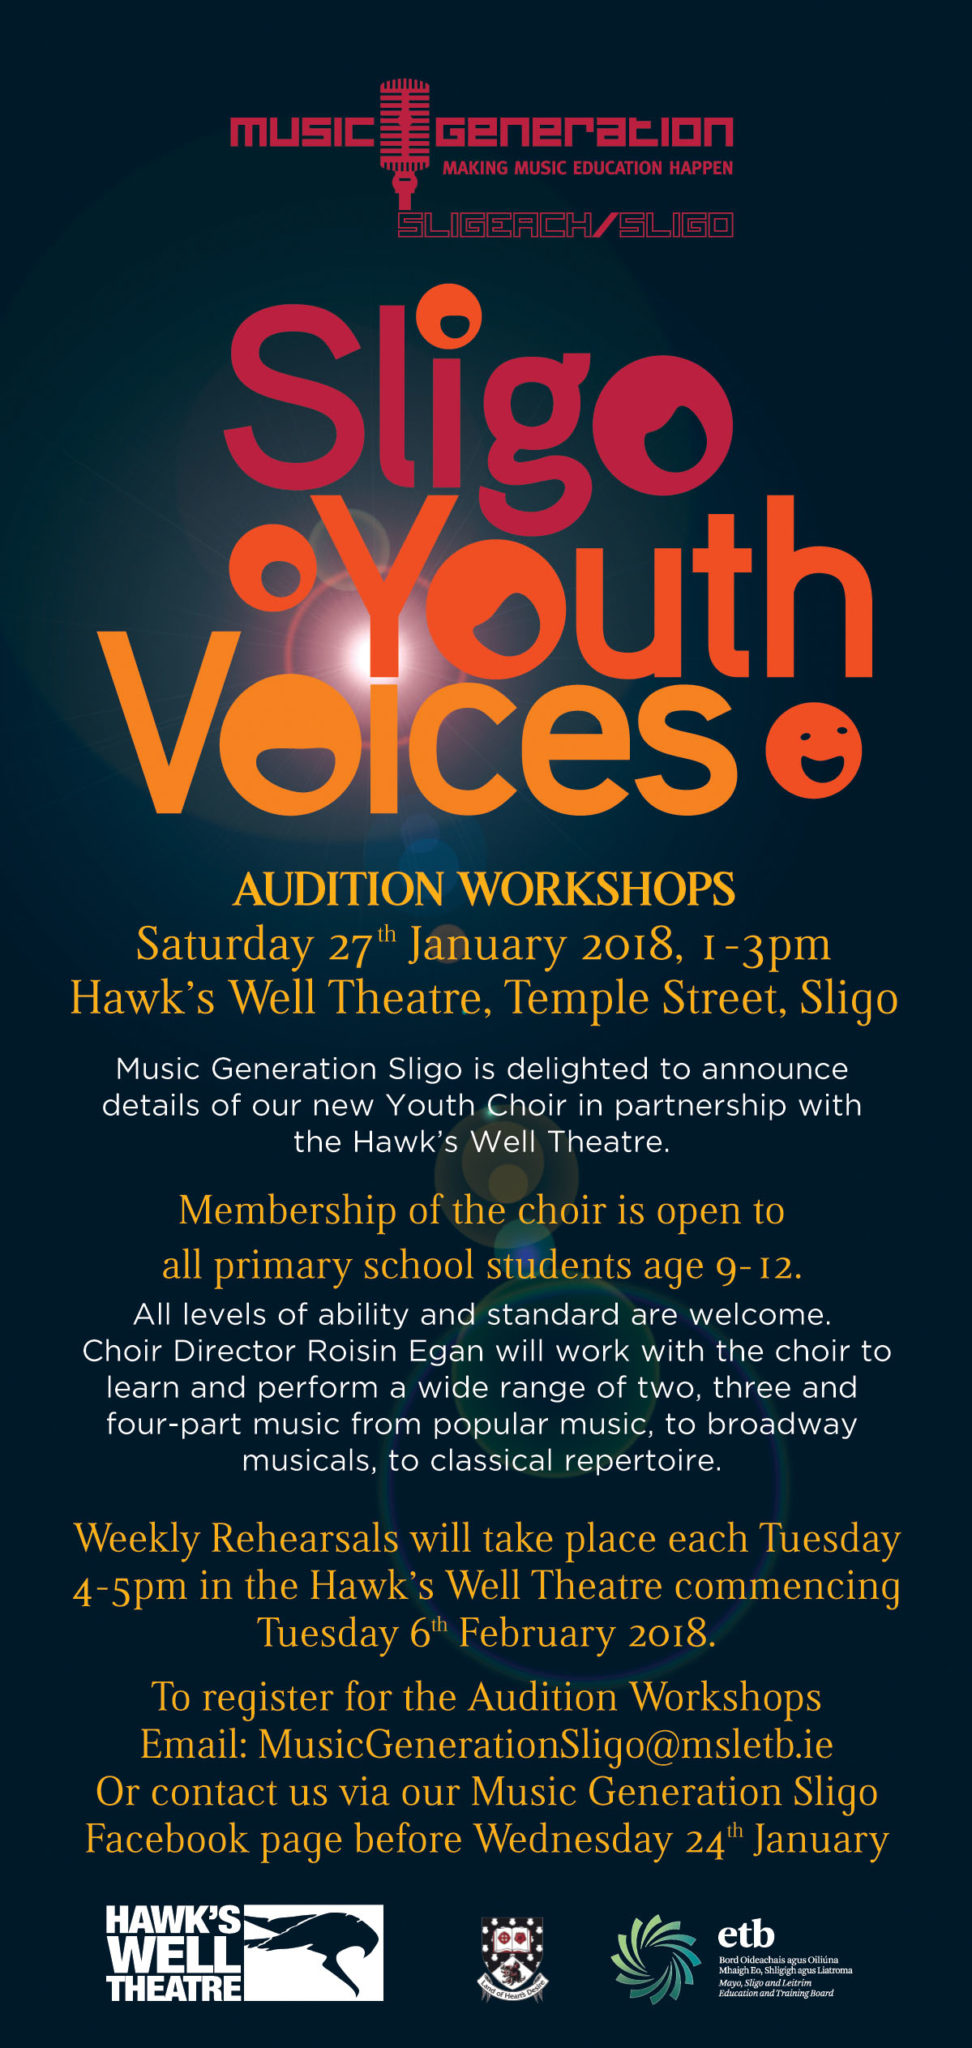 Music Generation Sligo Launches Youth Voices